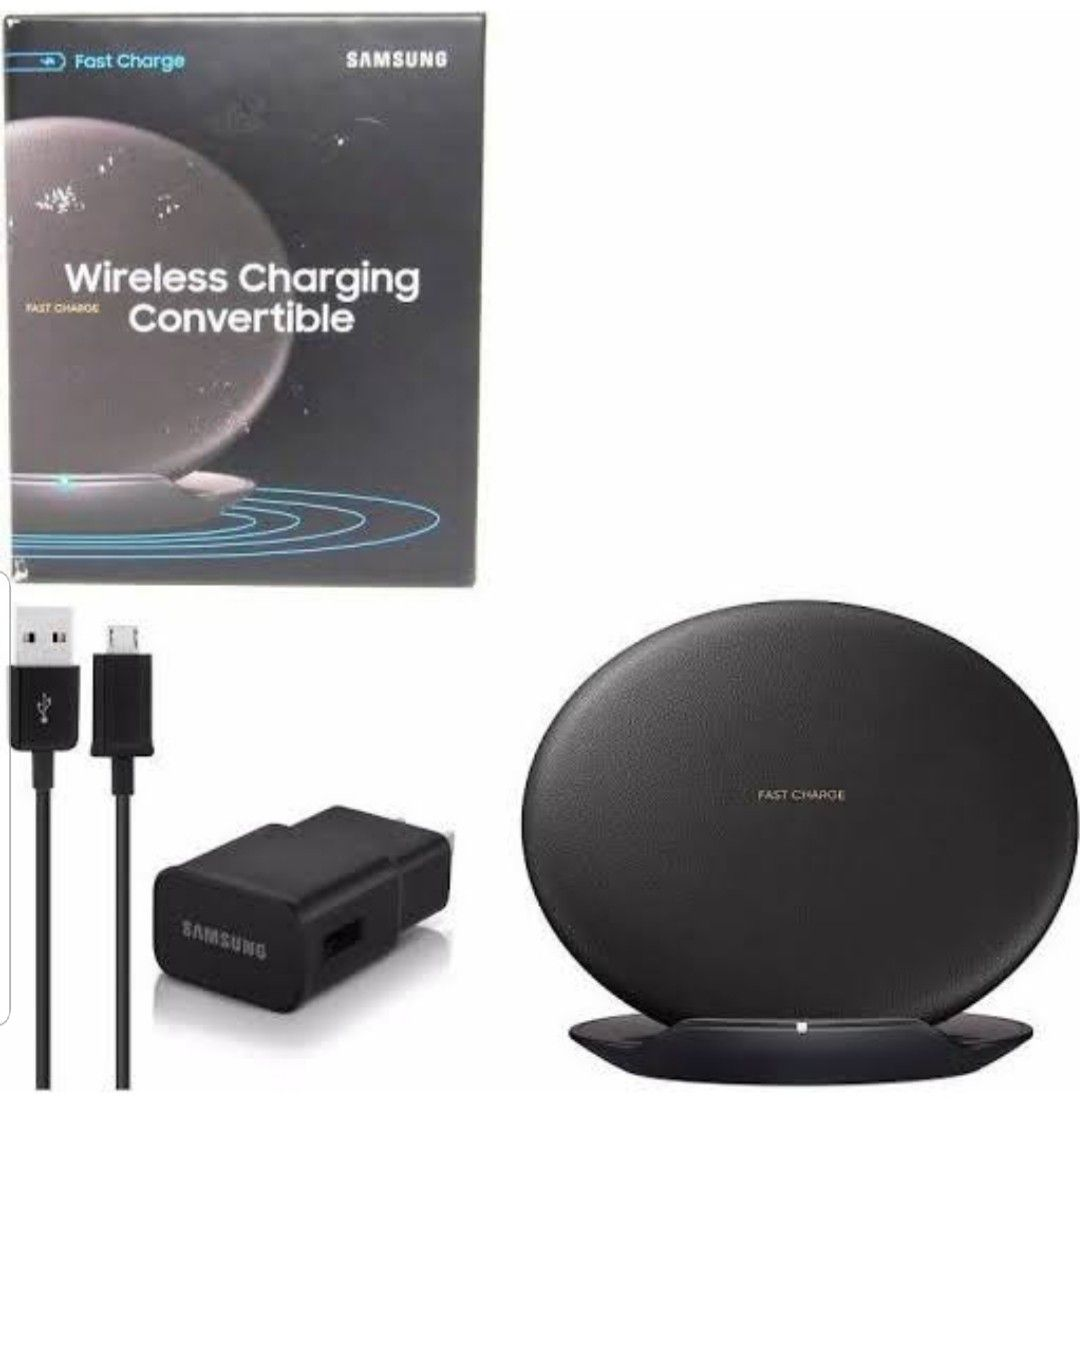 Samsung s9 wireless charger charges all phone that are capable of wireless charge